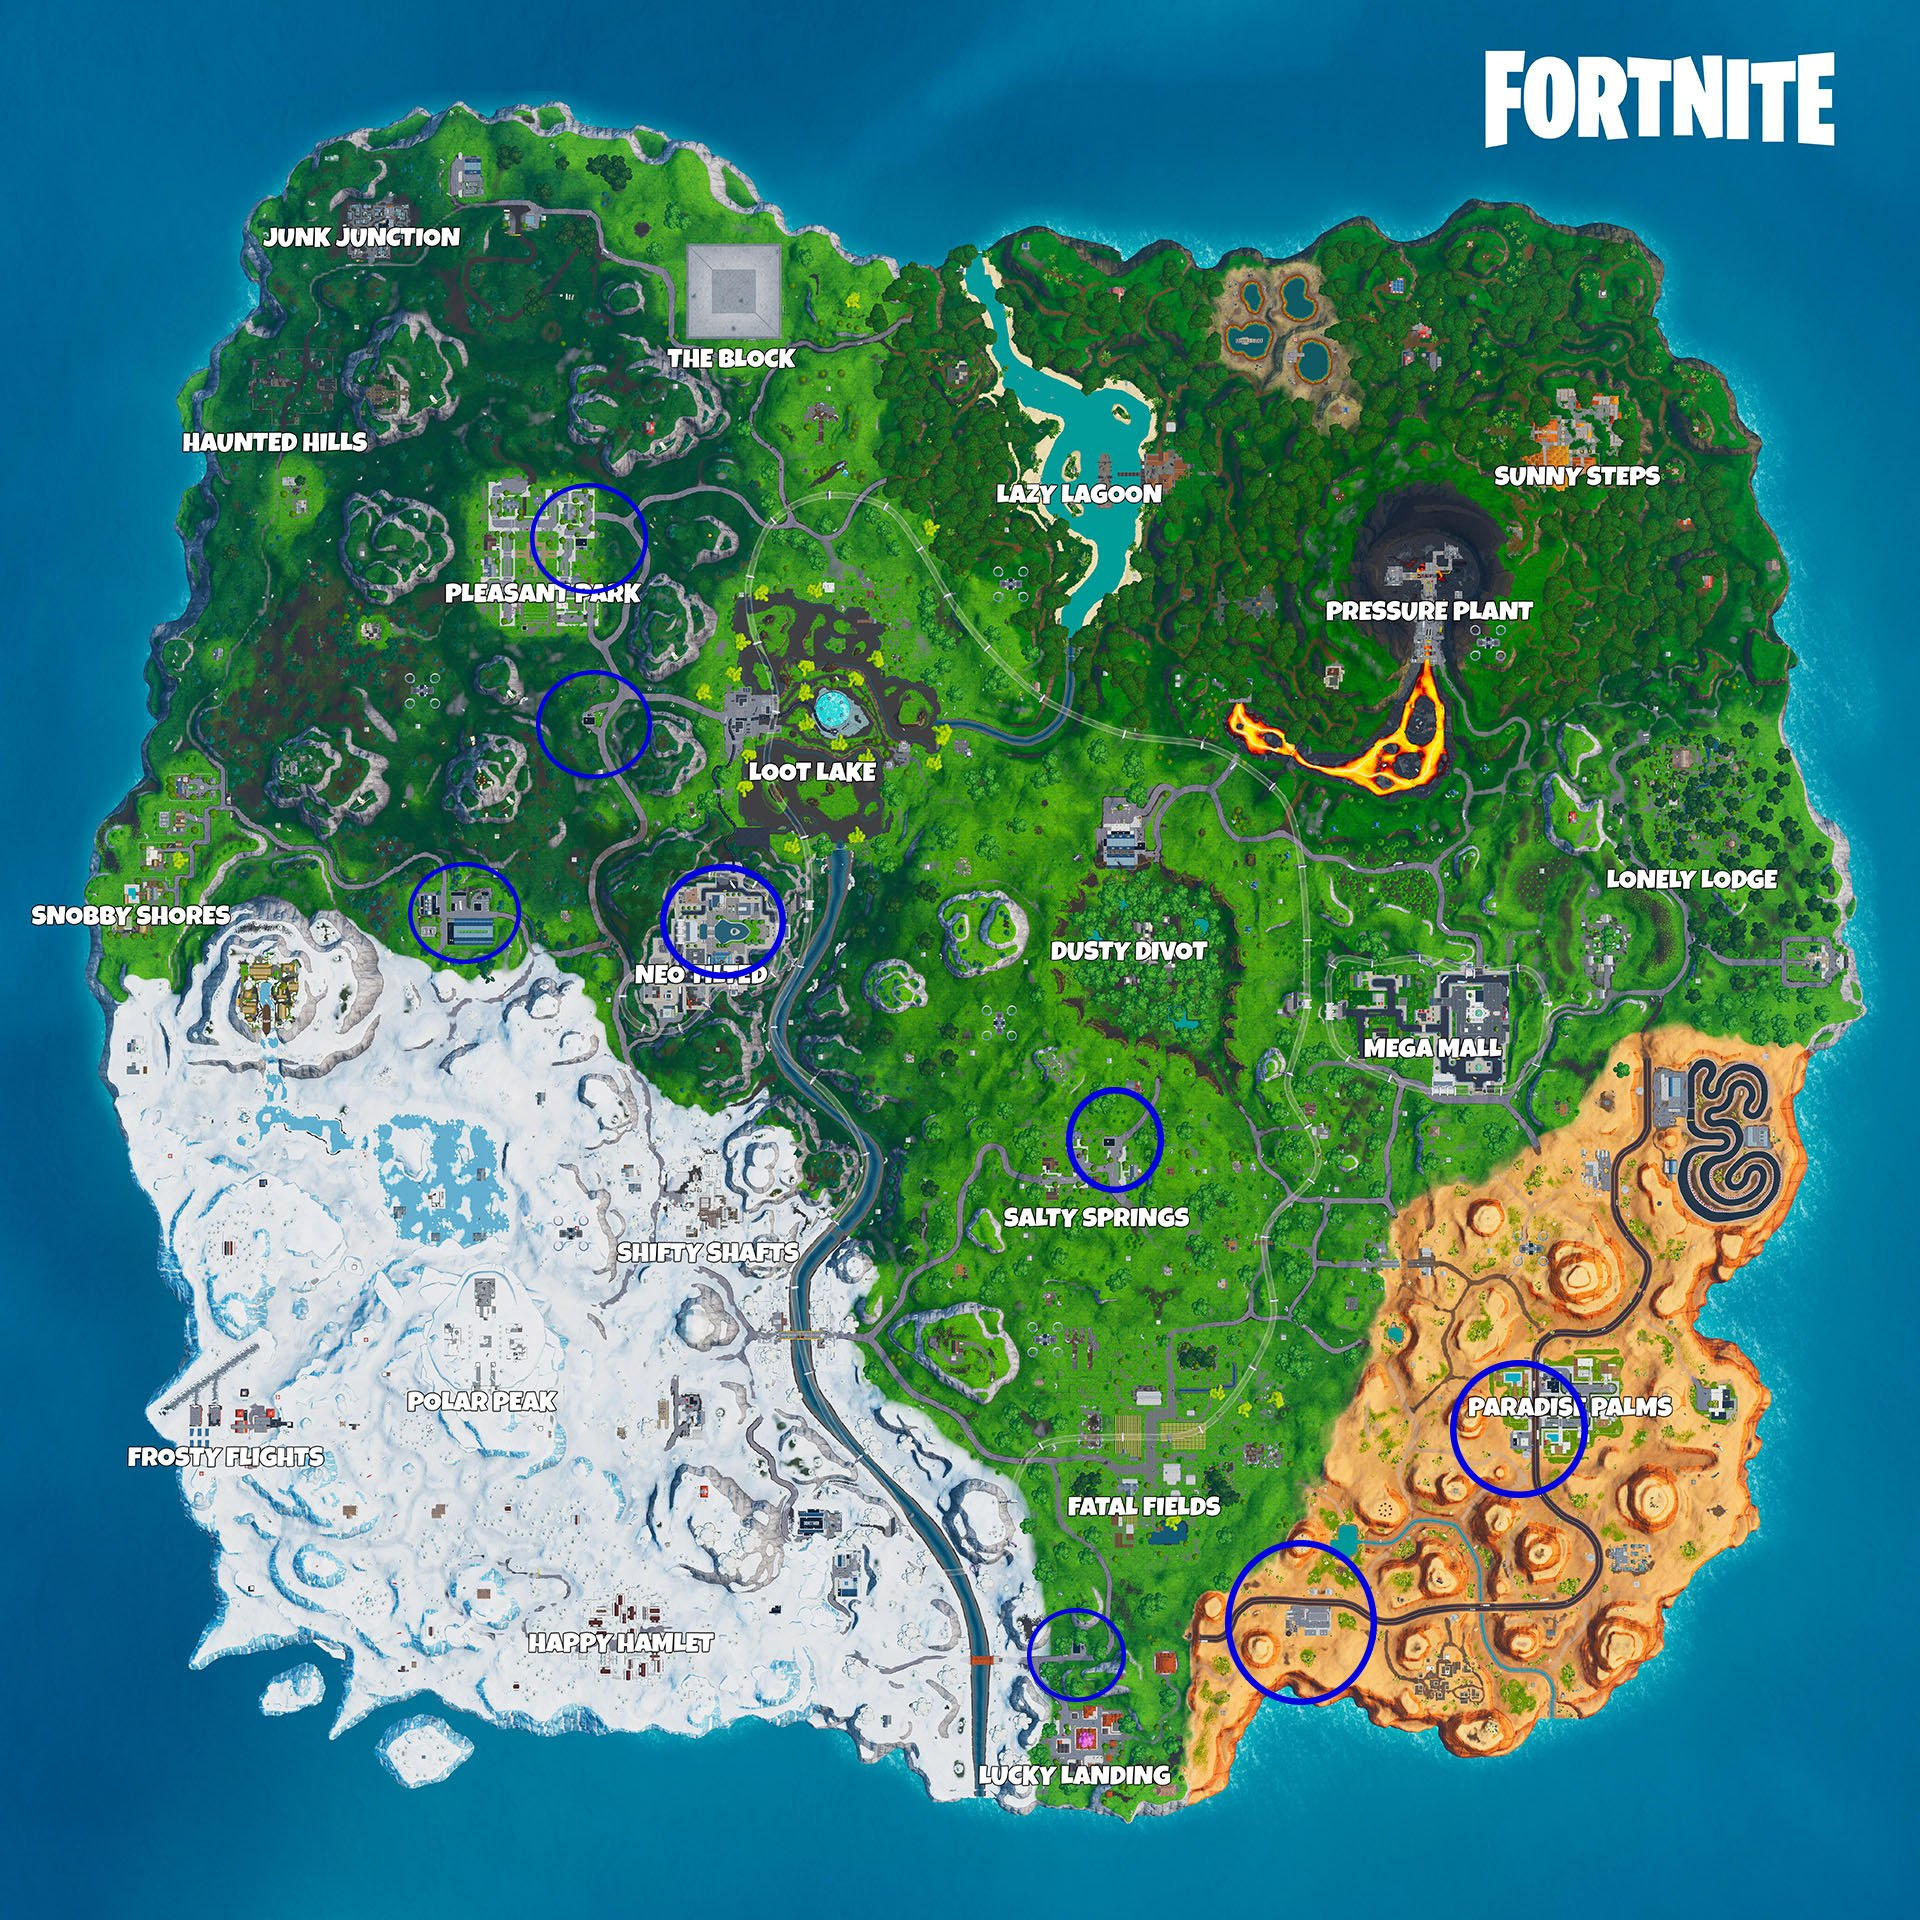 Fortnite gas station locations